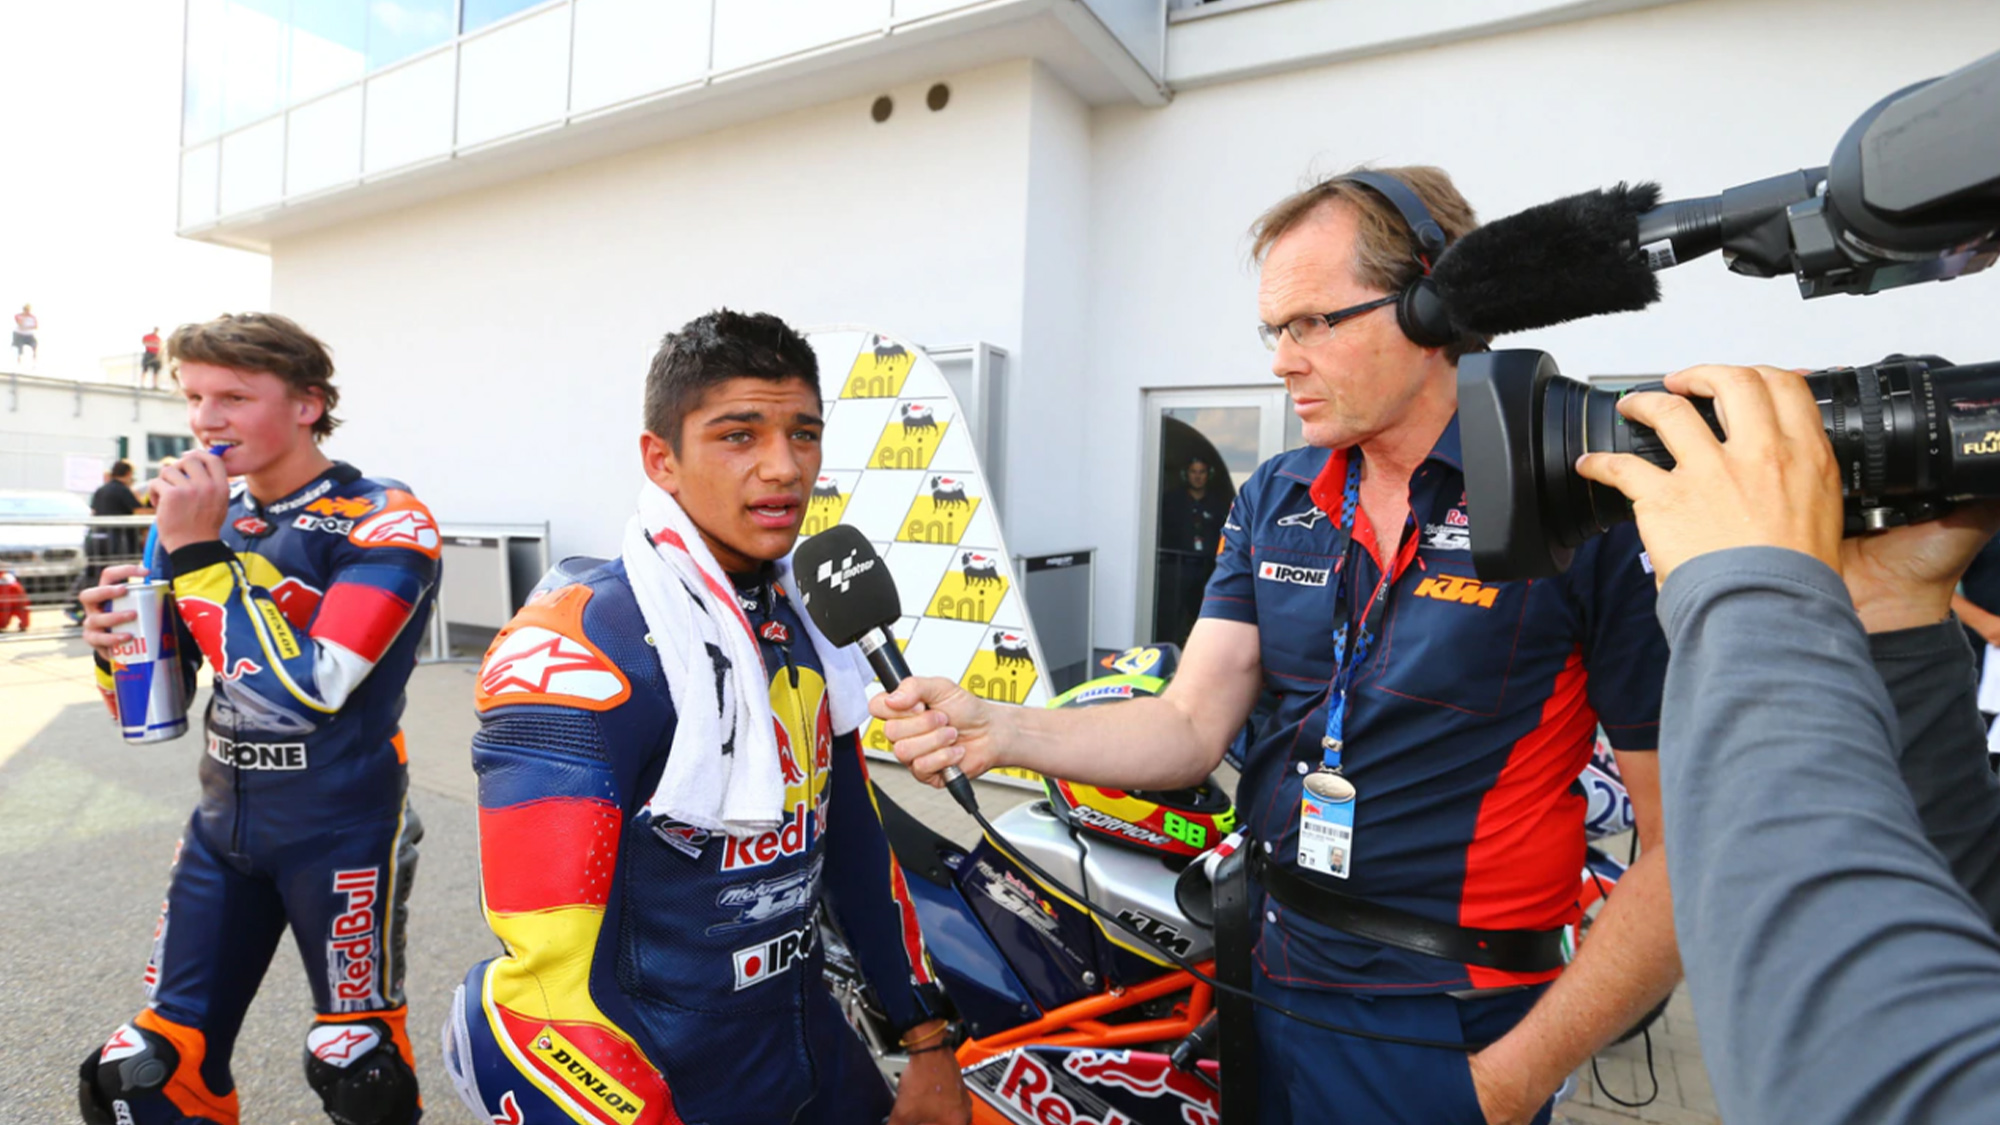 Red Bull Rookie Jorge Martin interviewed in 2013